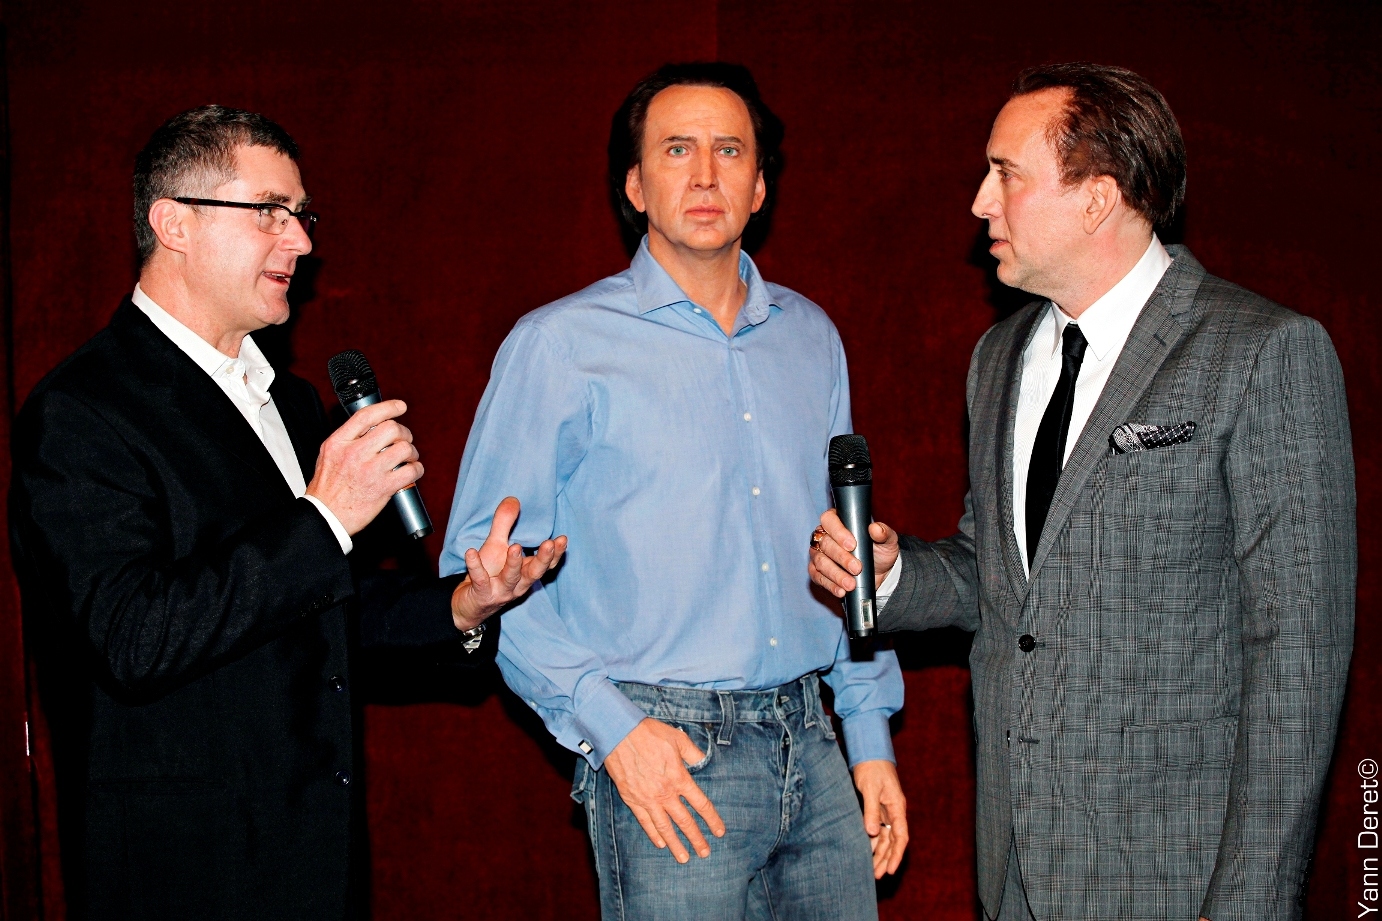 Nicolas Cage, his sculpture and the sculptor - Inauguration in Musée Grévin - Wax sculpture - Modelling by Eric Saint Chaffray - Crédit Musée Grévin